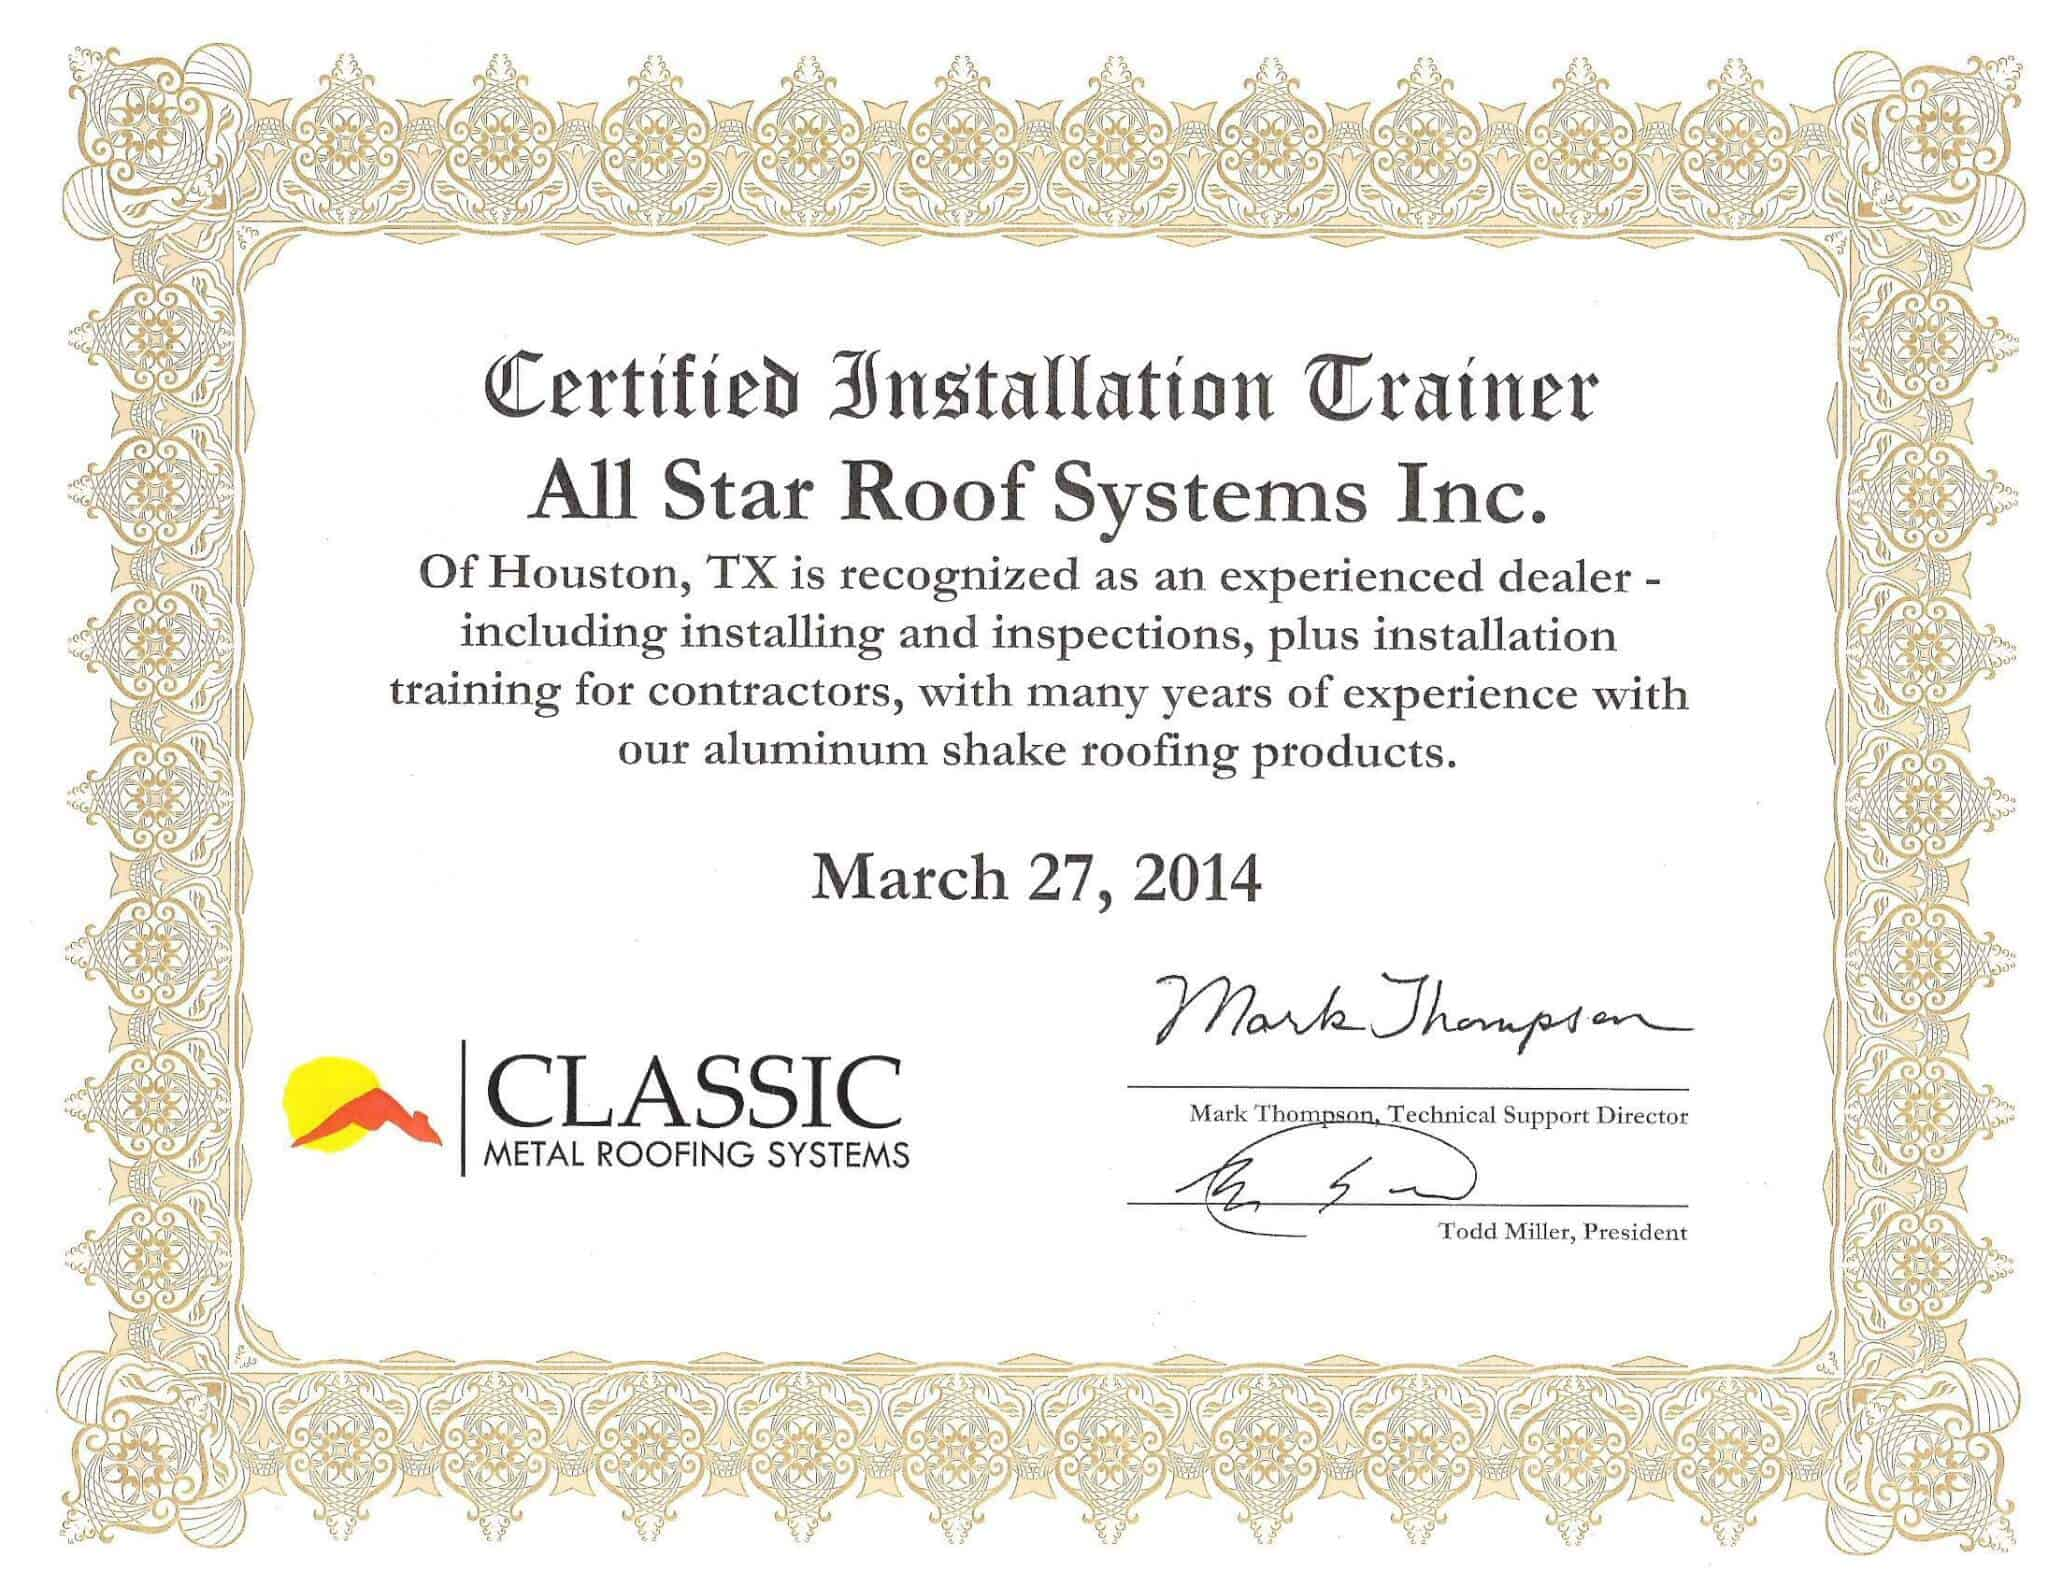 All Star Roof Systems Recognized as Experienced Dealer/Installer for Country Manor Shake Aluminum Roofing System